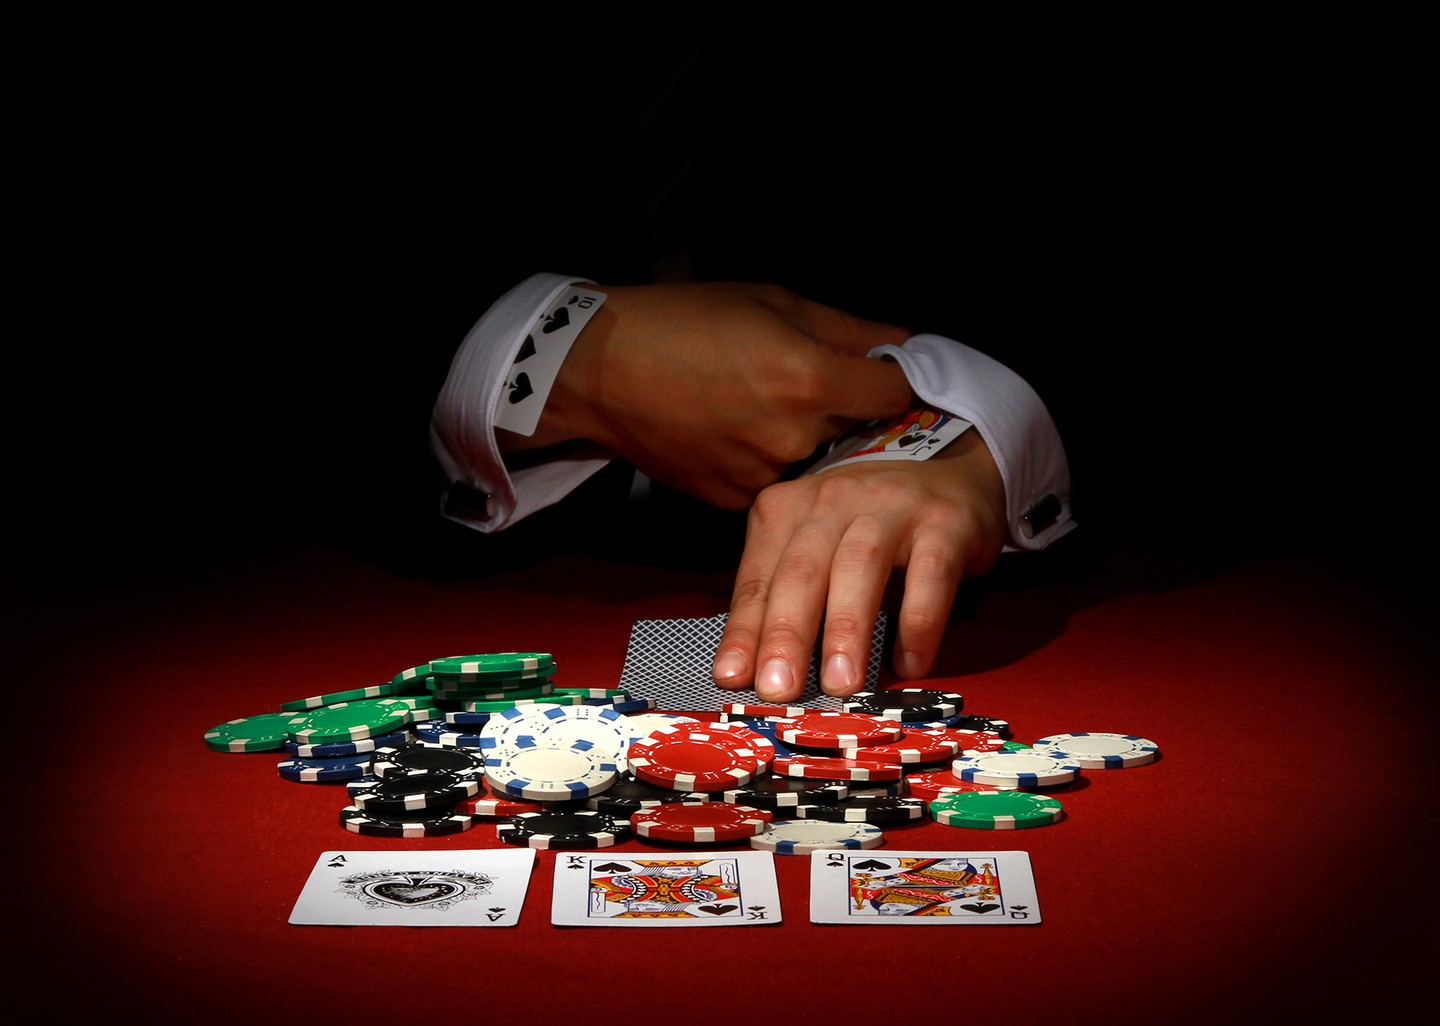 The dark side of online poker or the commoditization and weaponization of big data and espionage